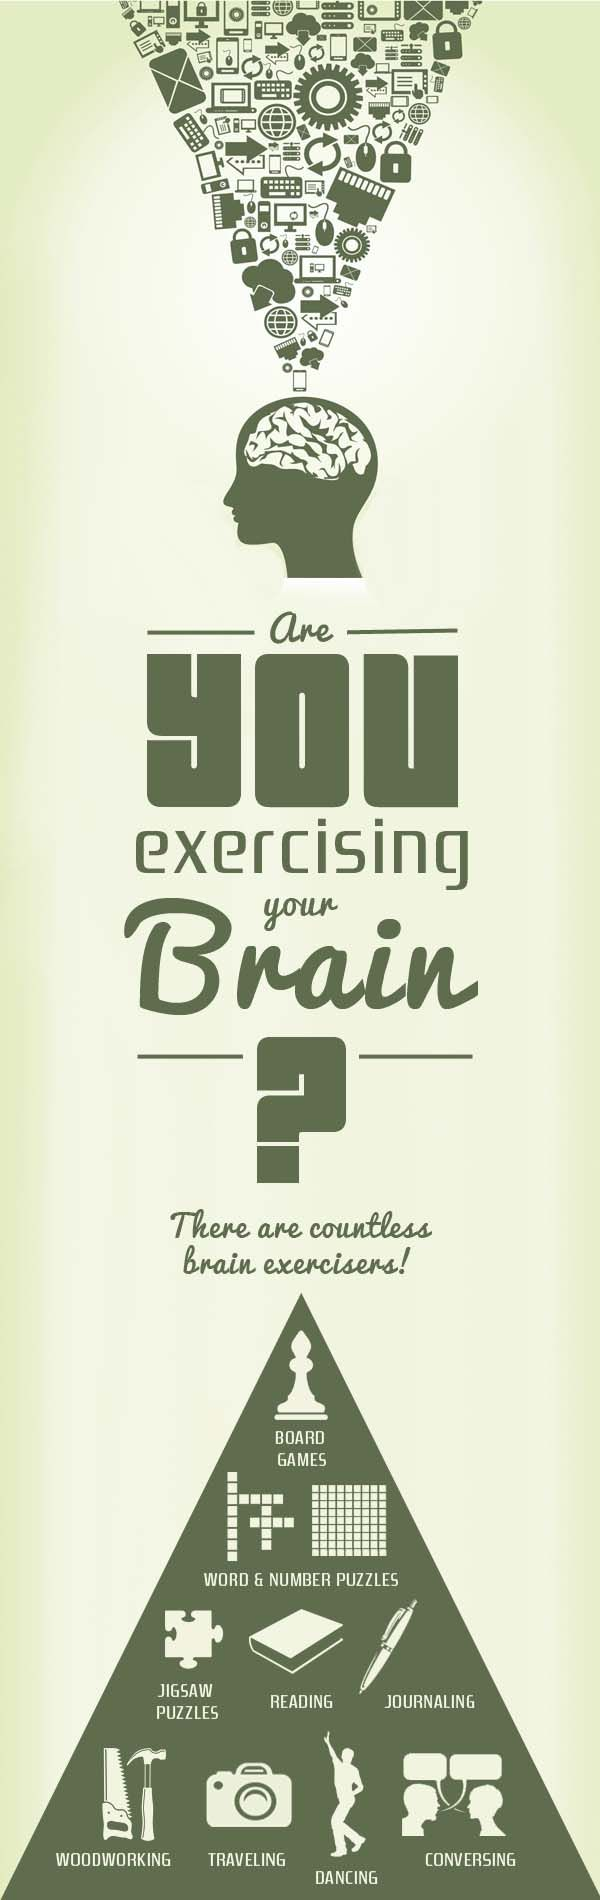 A healthy brain, like the rest of your body, requires exercise! Are you exercising your brain daily?